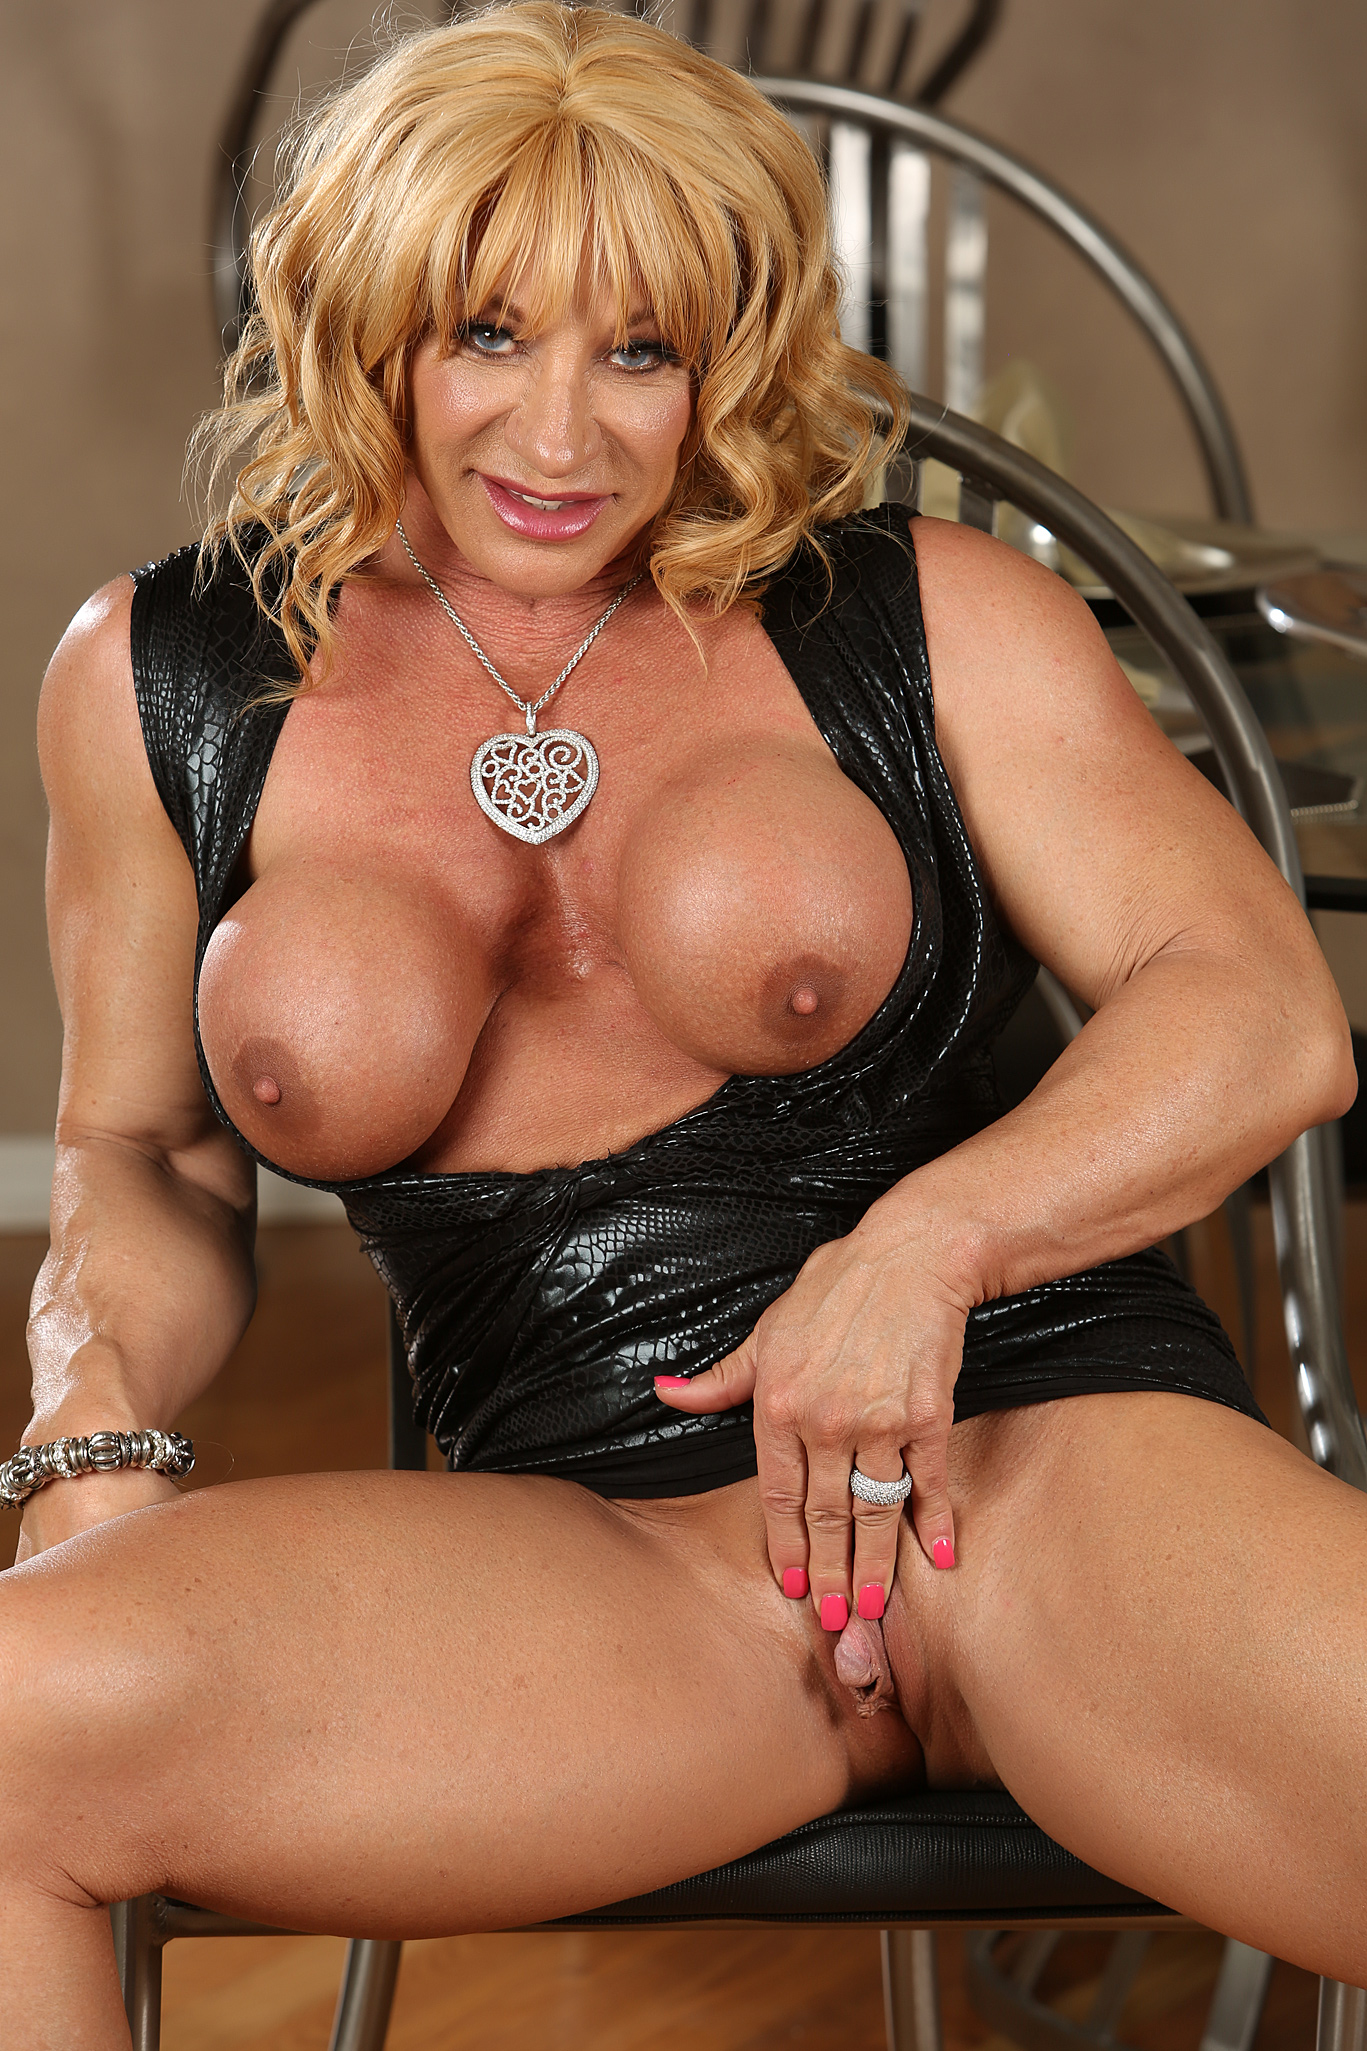 Female bodybuilder jill jaxen gets naked 8